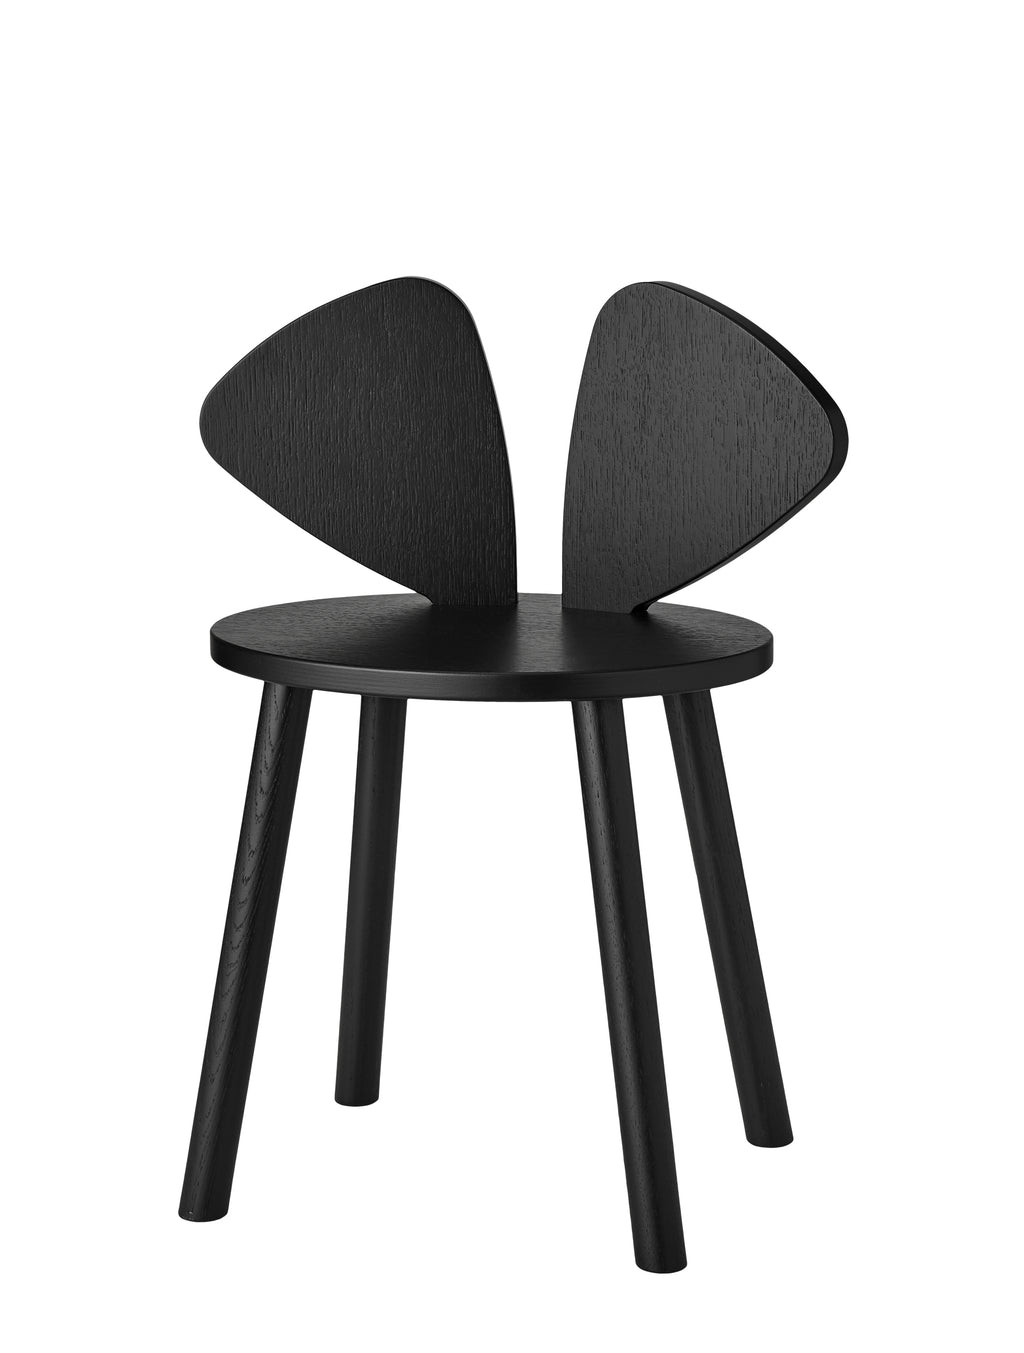 MOUSE CHAIR SCHOOL (6-10 YEARS) // BLACK